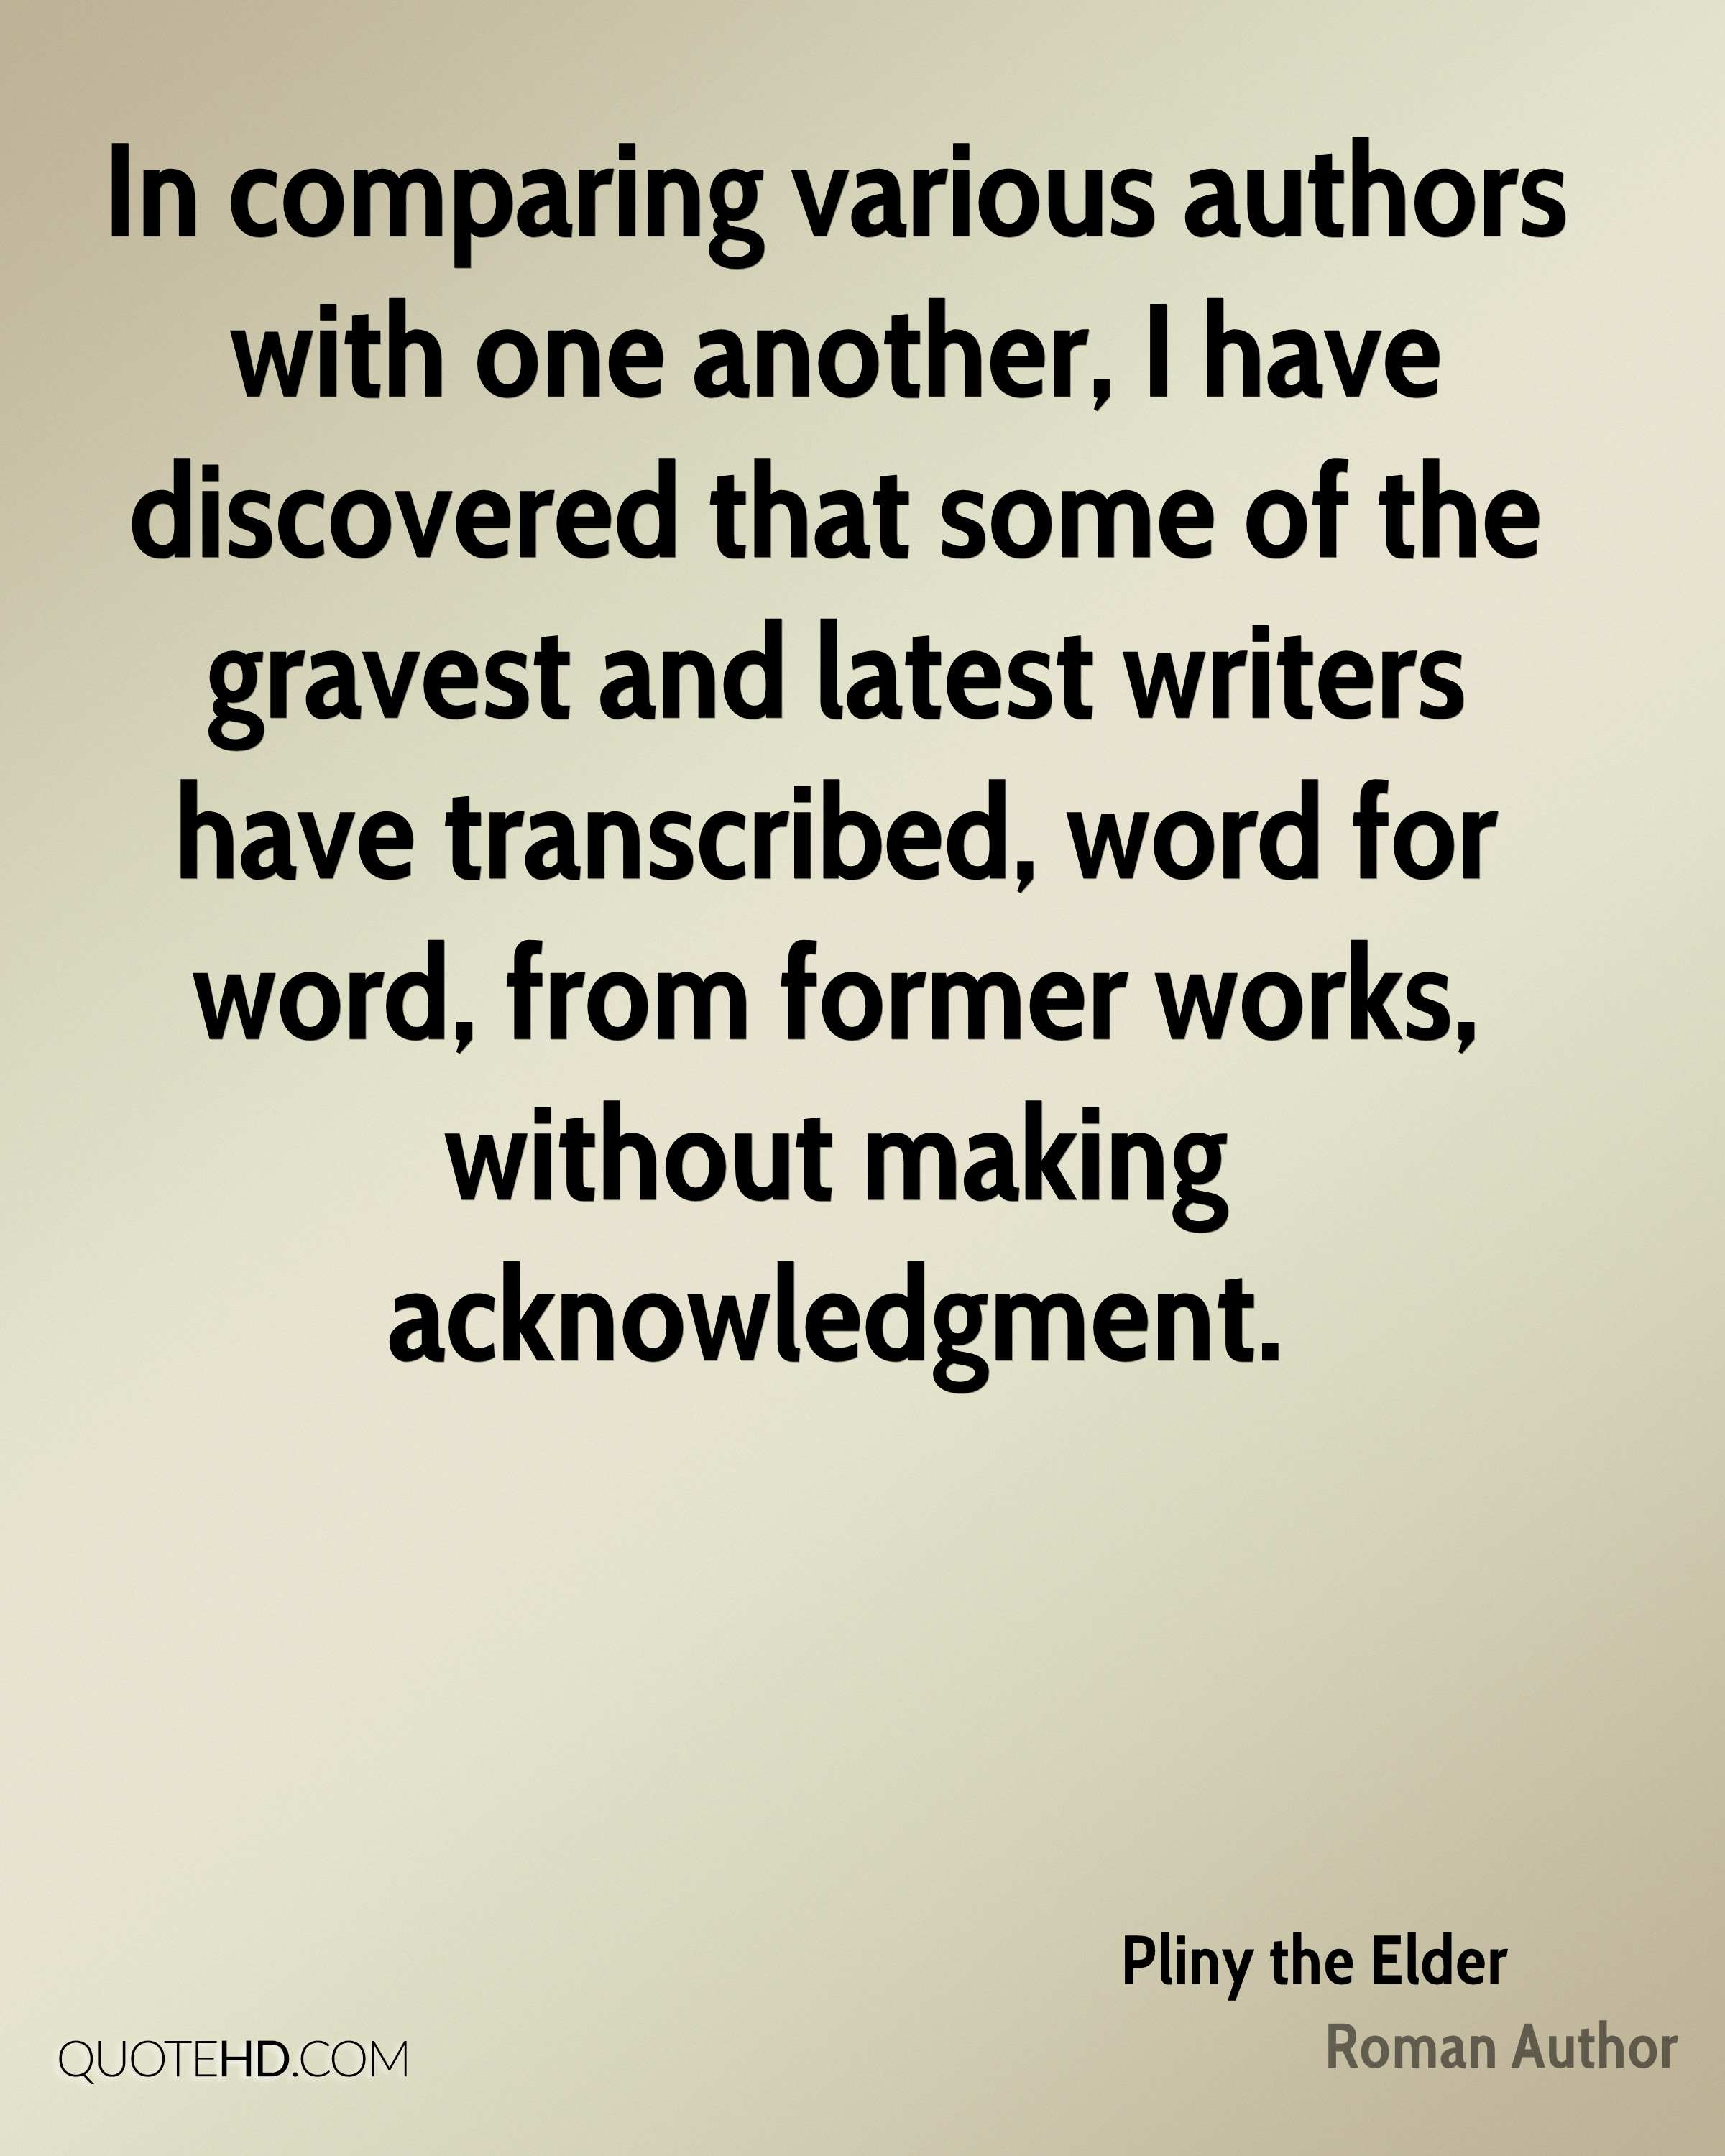 In comparing various authors with one another, I have discovered that some of the gravest and latest writers have transcribed, word for word, from former works, without making acknowledgment.